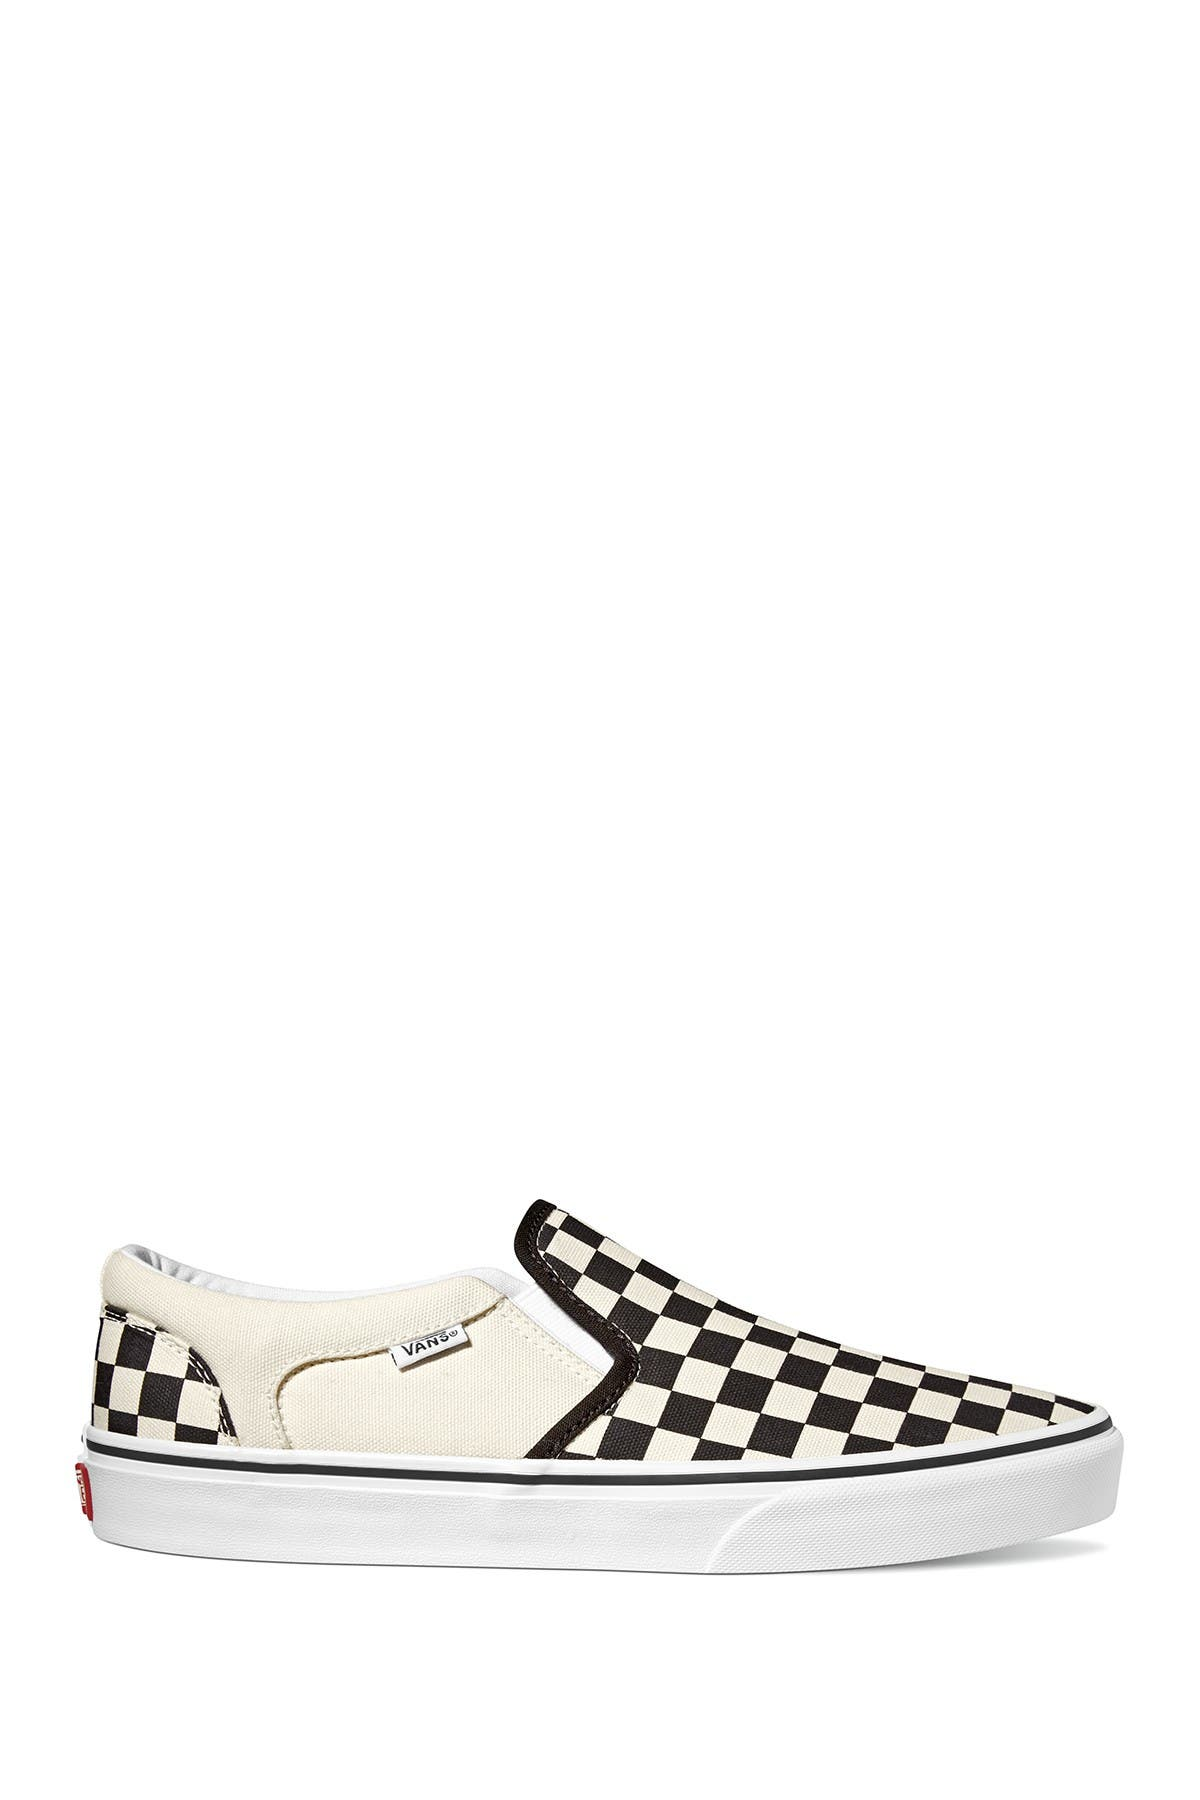 Image of VANS Asher V Slip-On Checkerboard Sneaker